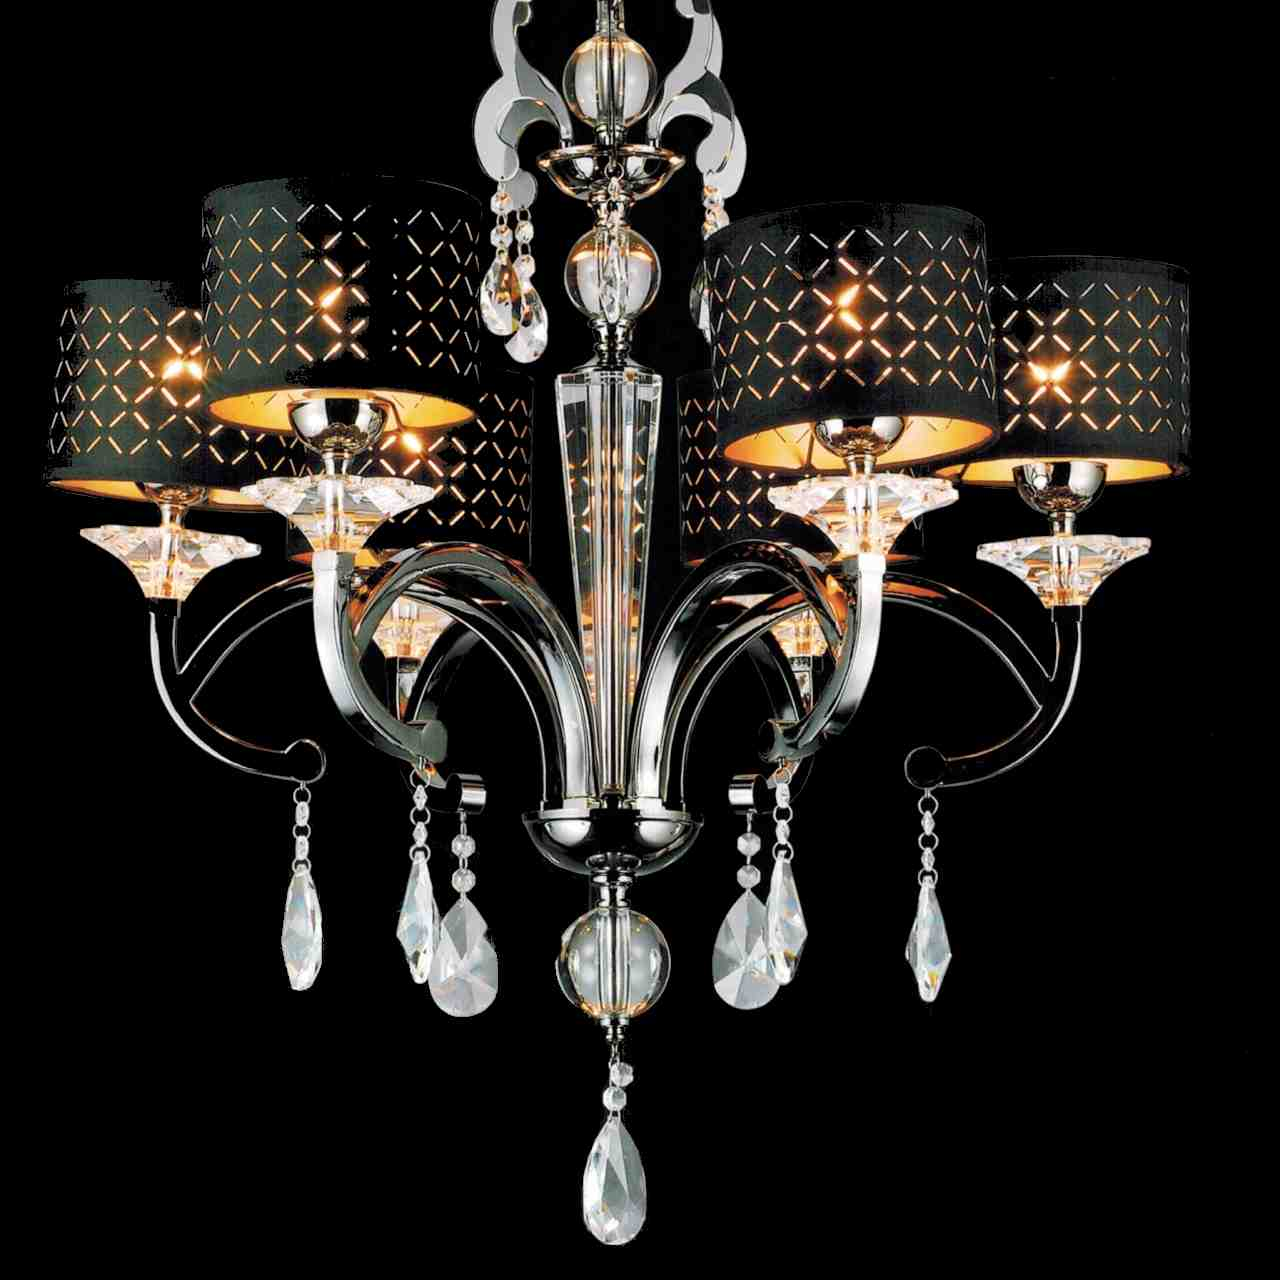 Brizzo lighting stores 29 bello nero contemporary crystal round picture of 29 bello nero contemporary crystal round chandelier black chrome with shades 6 lights arubaitofo Choice Image